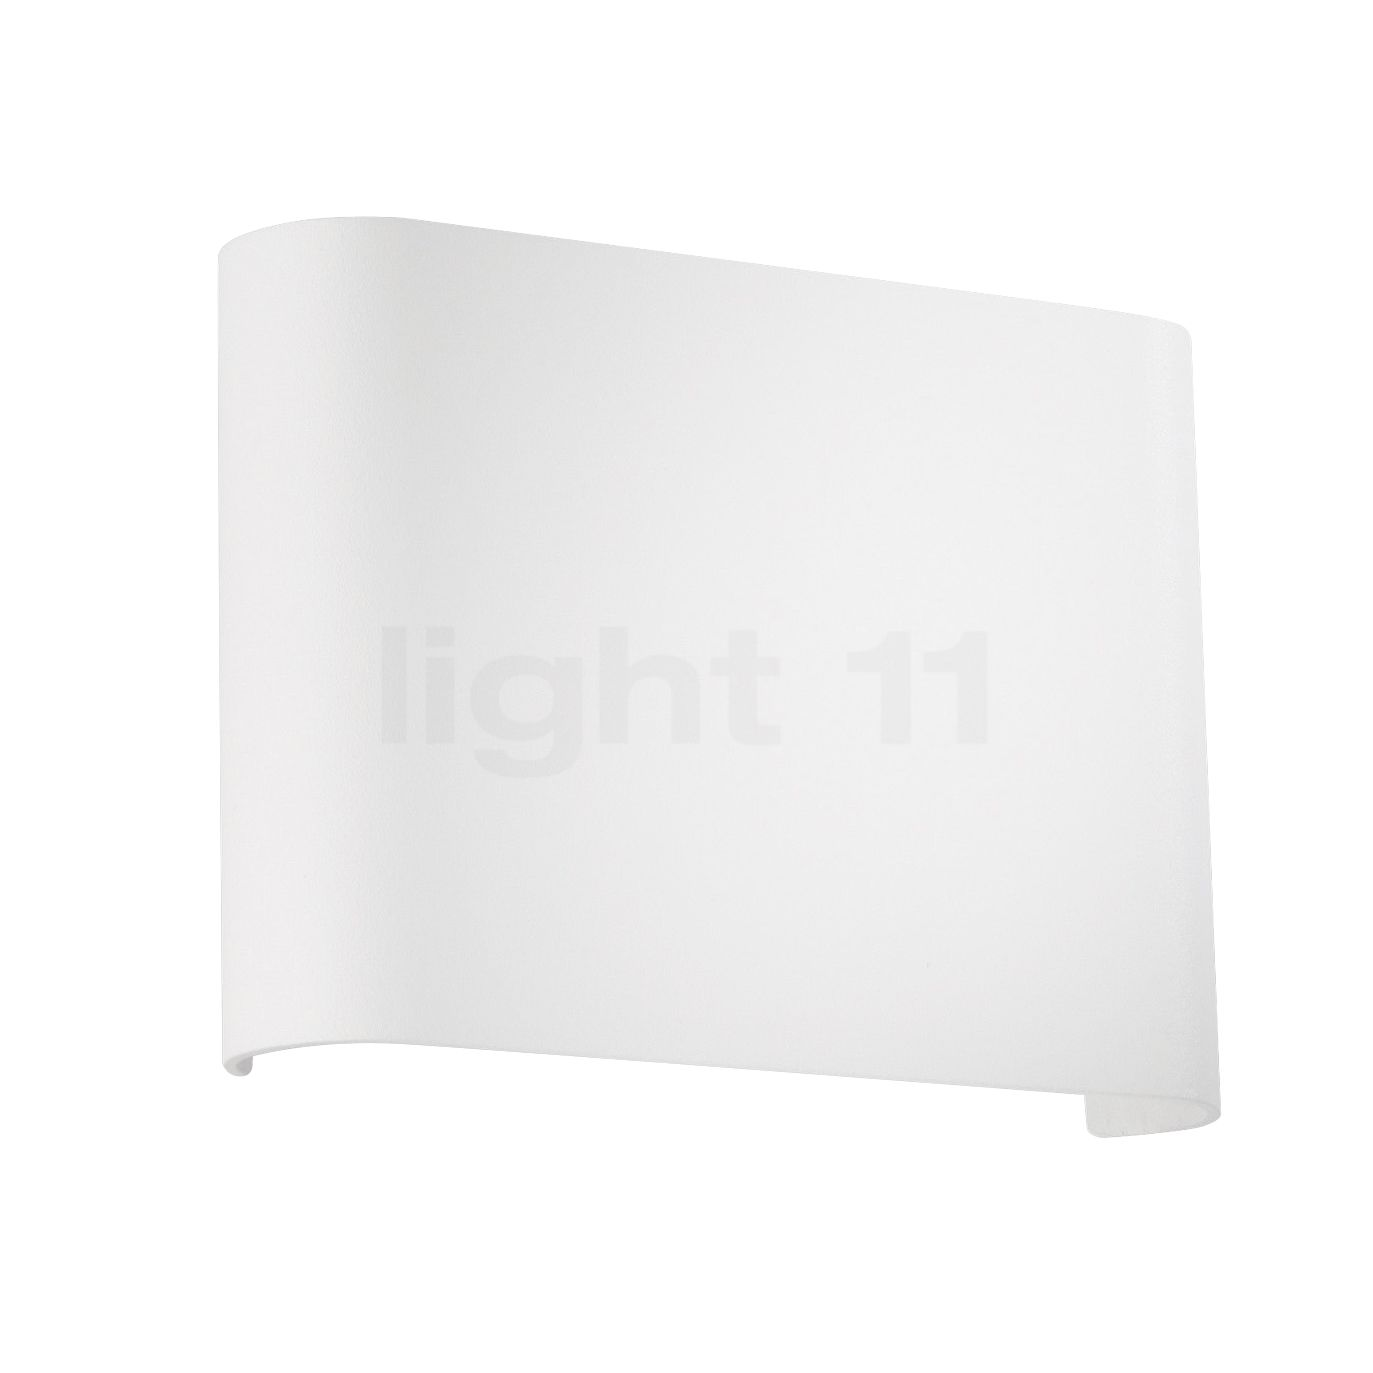 Philips ledino galax applique murale led applique for Philips ledino applique murale exterieur